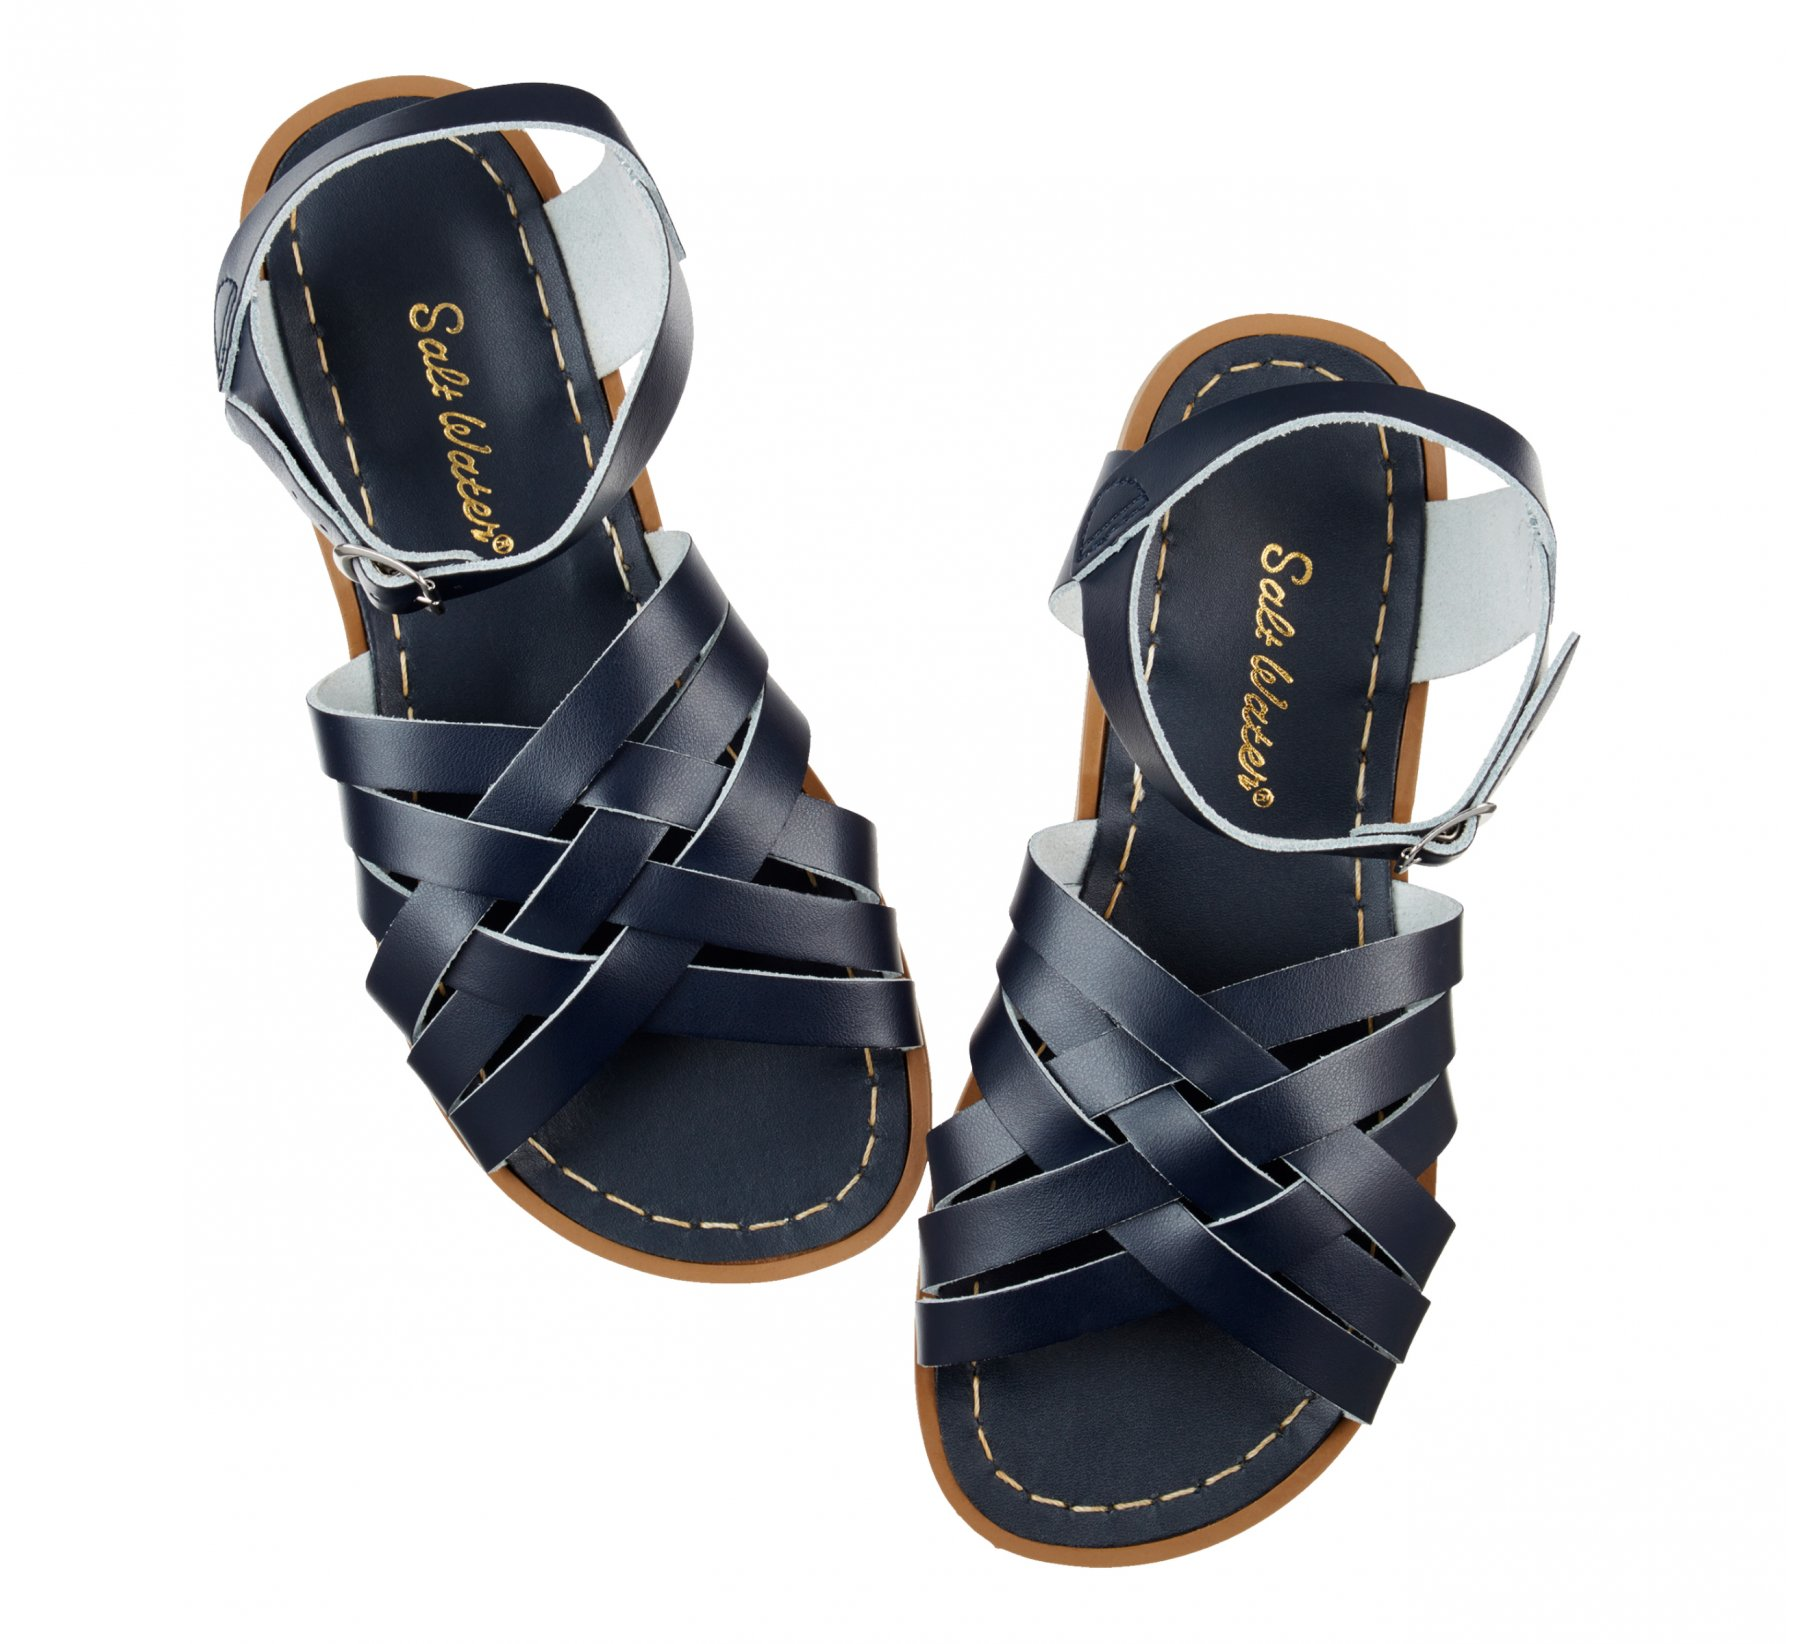 Retro Bleu Marine - Salt Water Sandals